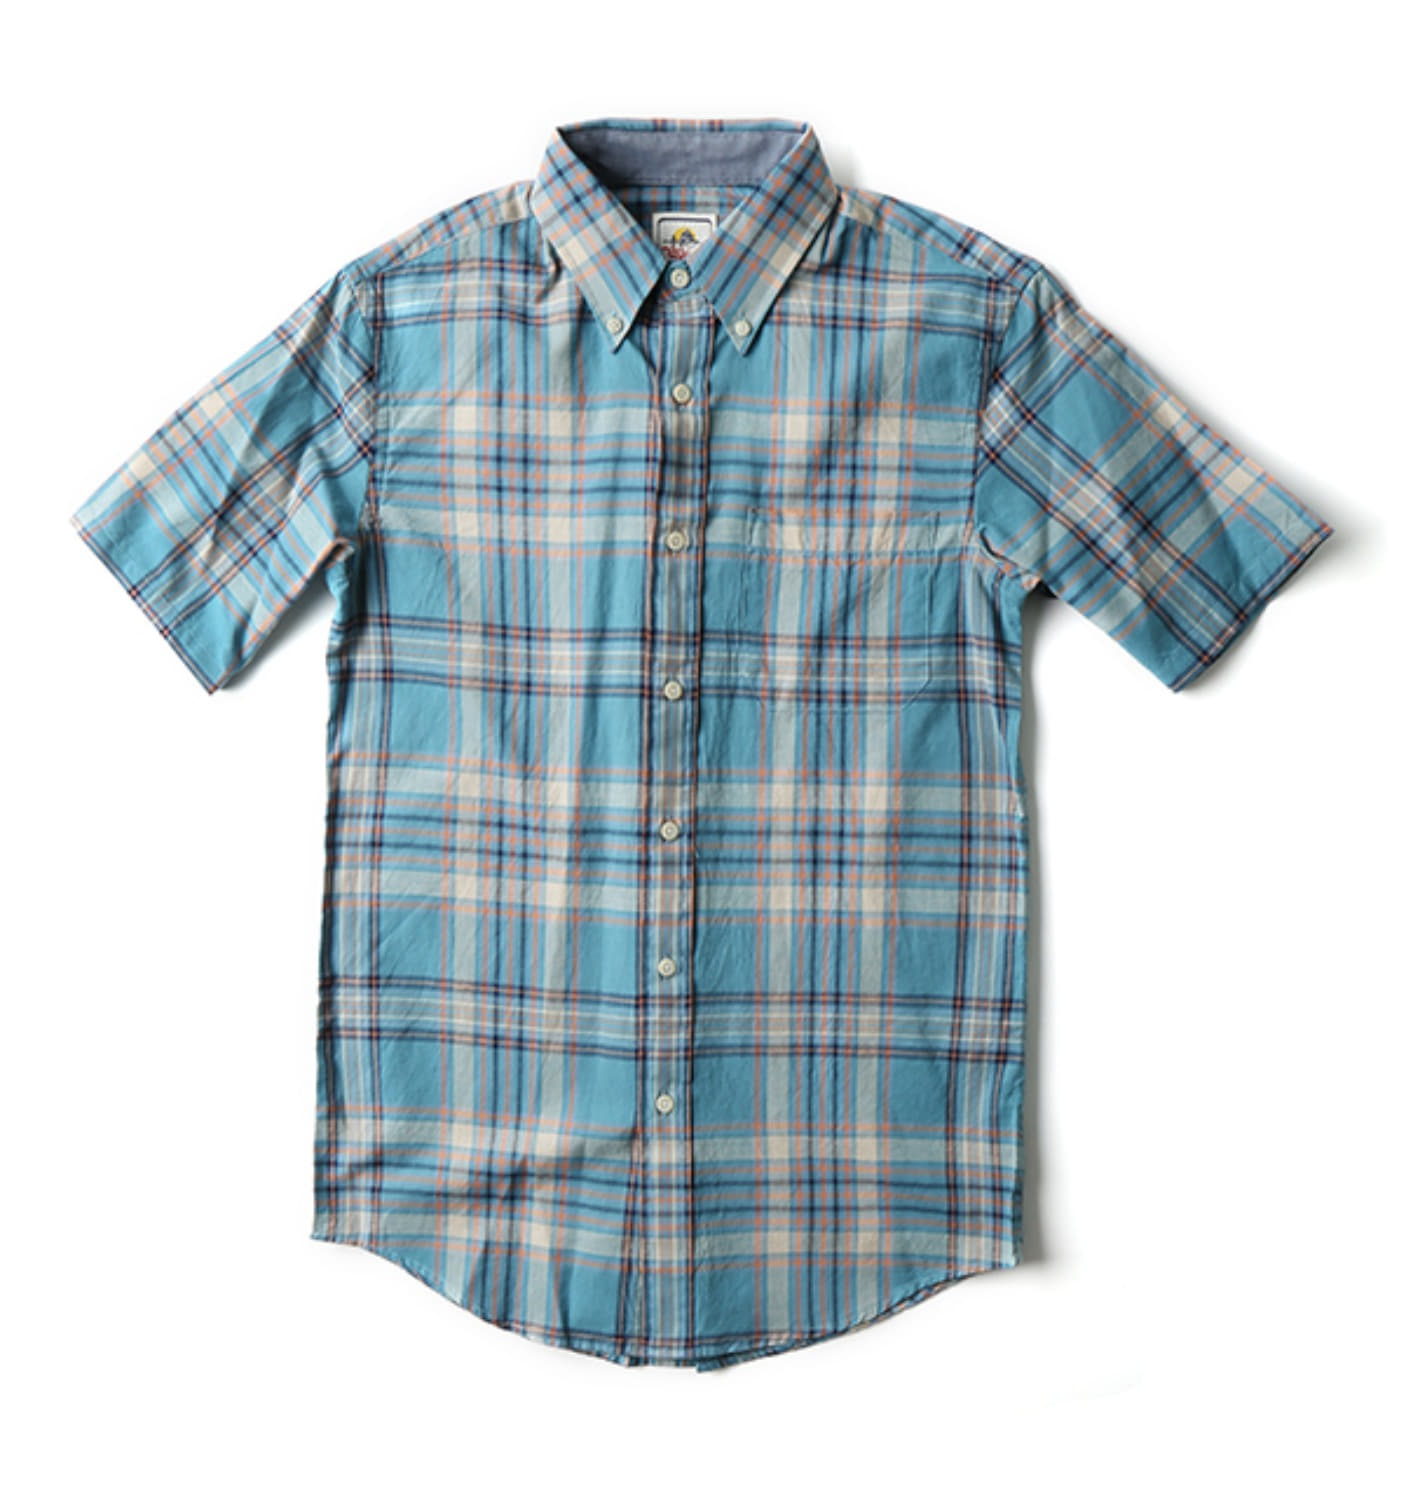 S/S Fitted Seaside BD Shirt Turquoise